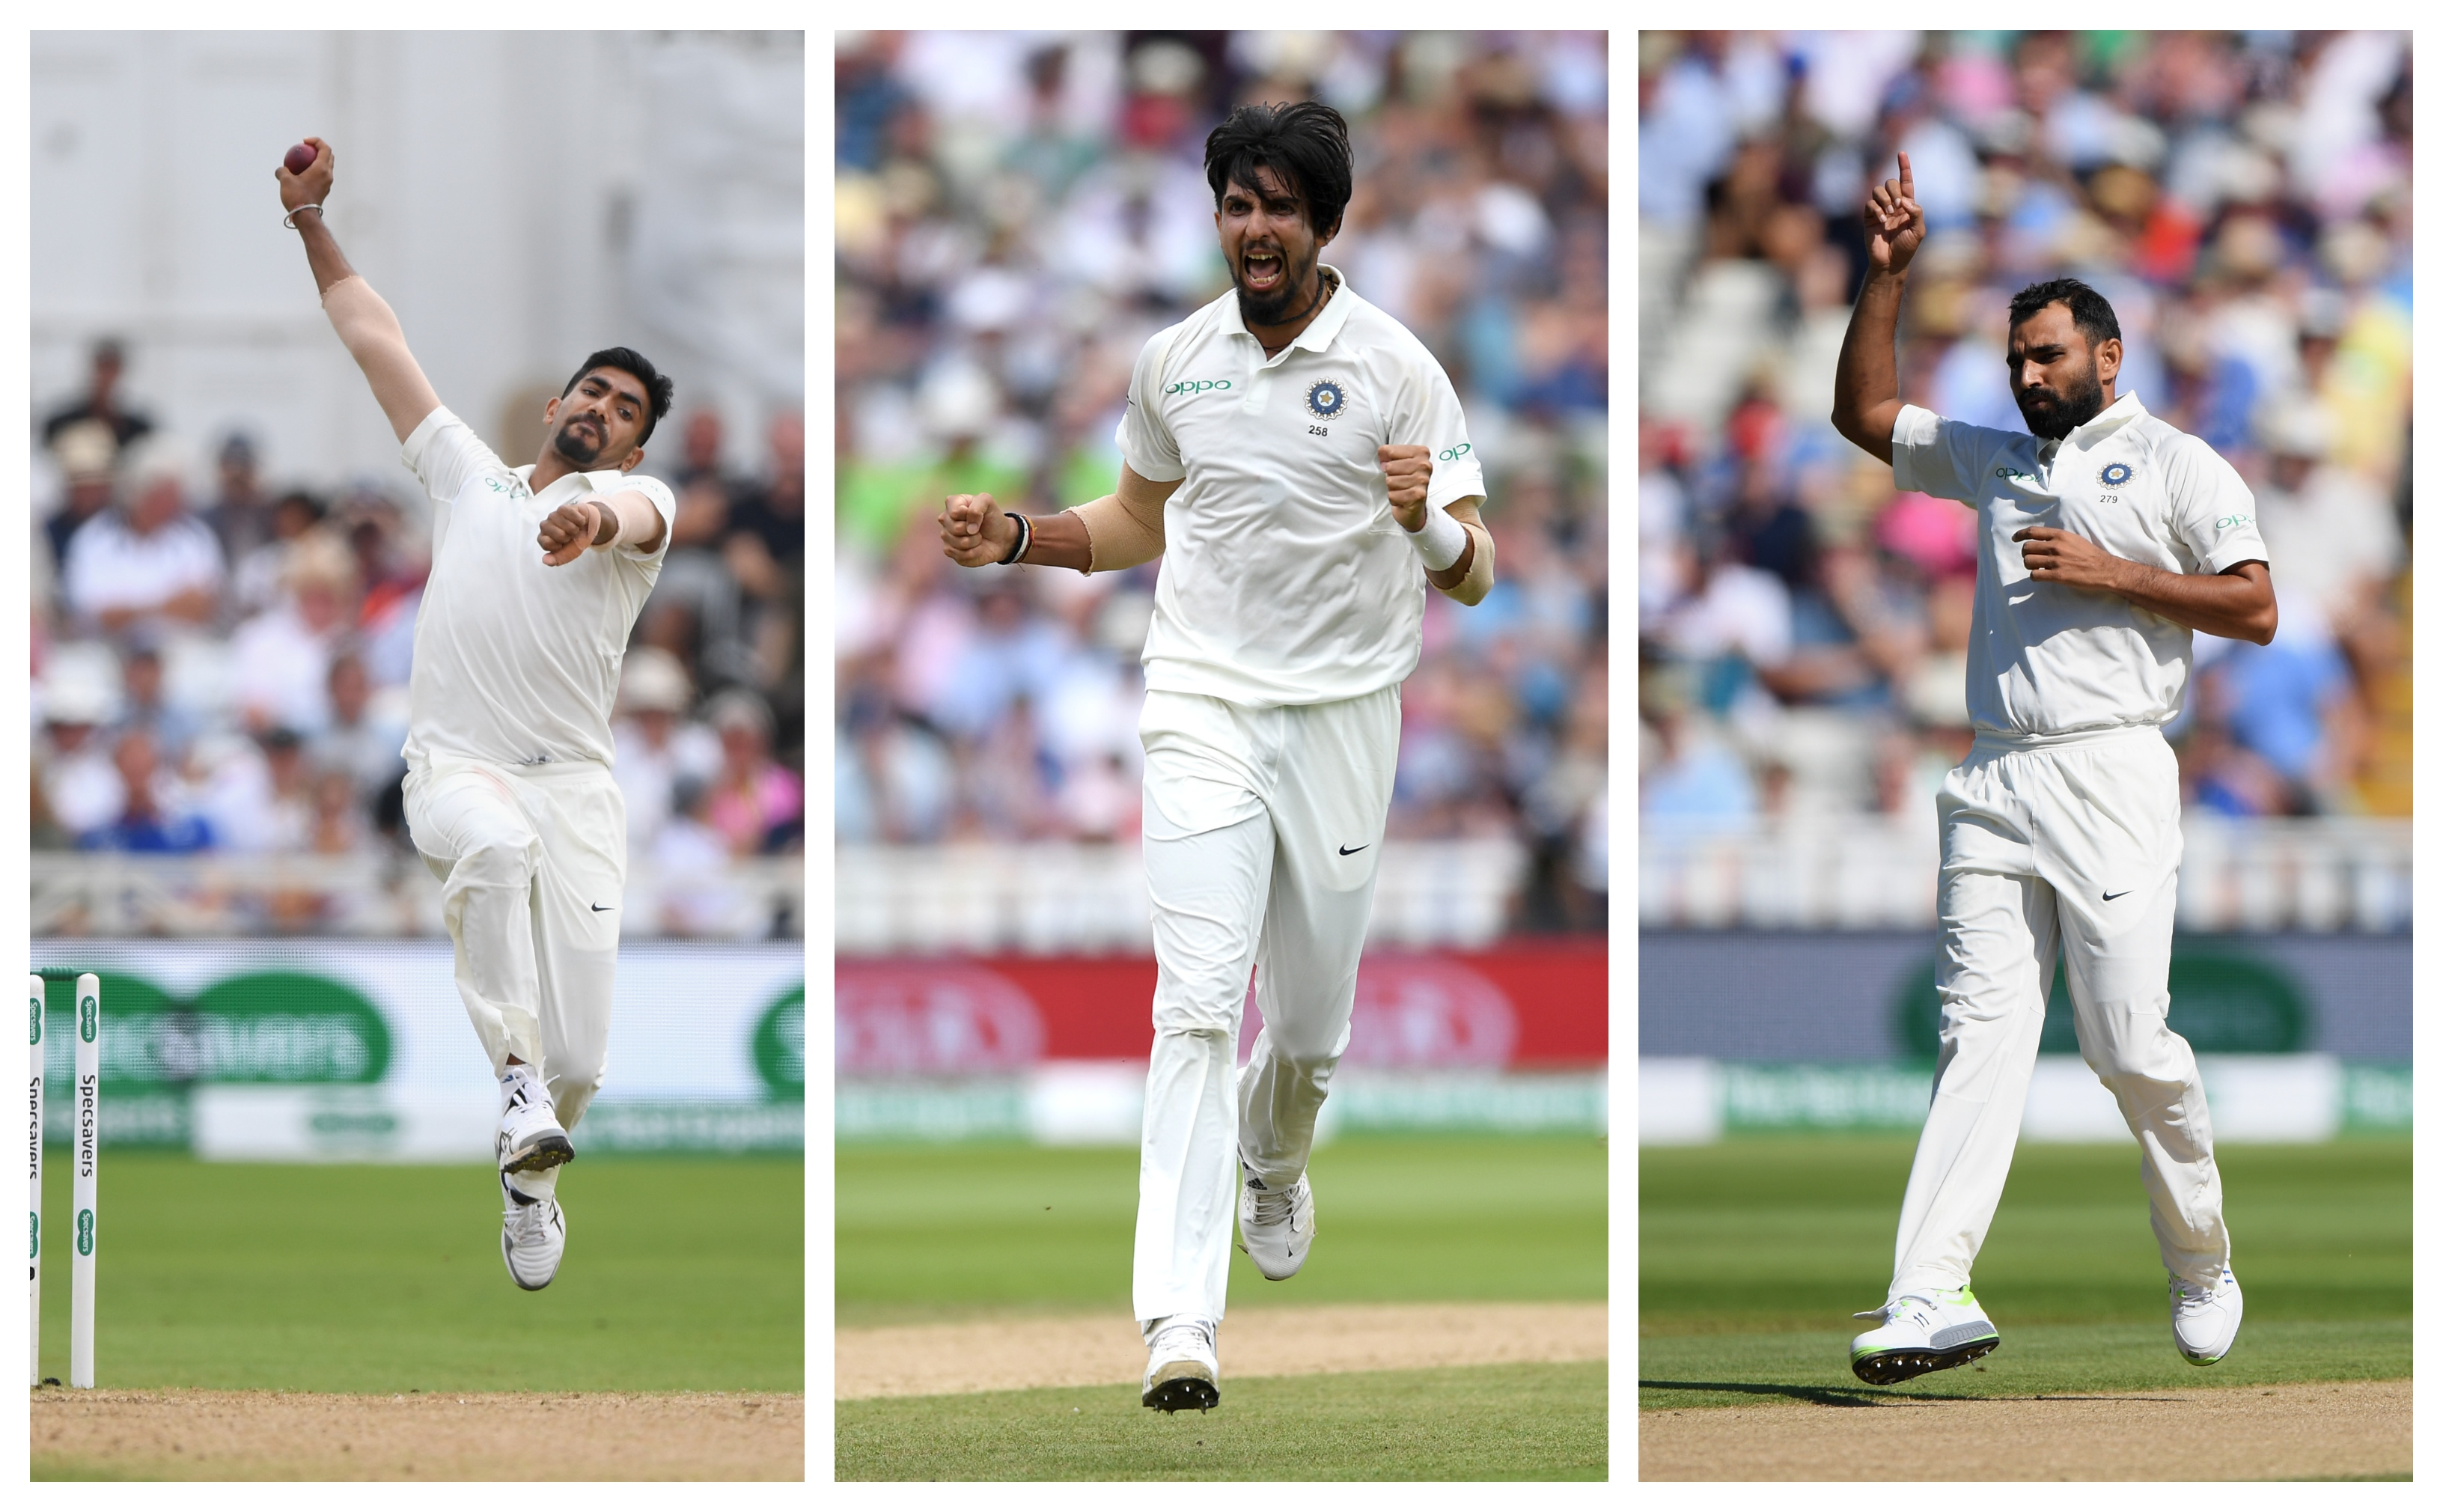 Ishant, Bumrah and Shami were excellent in England | Getty